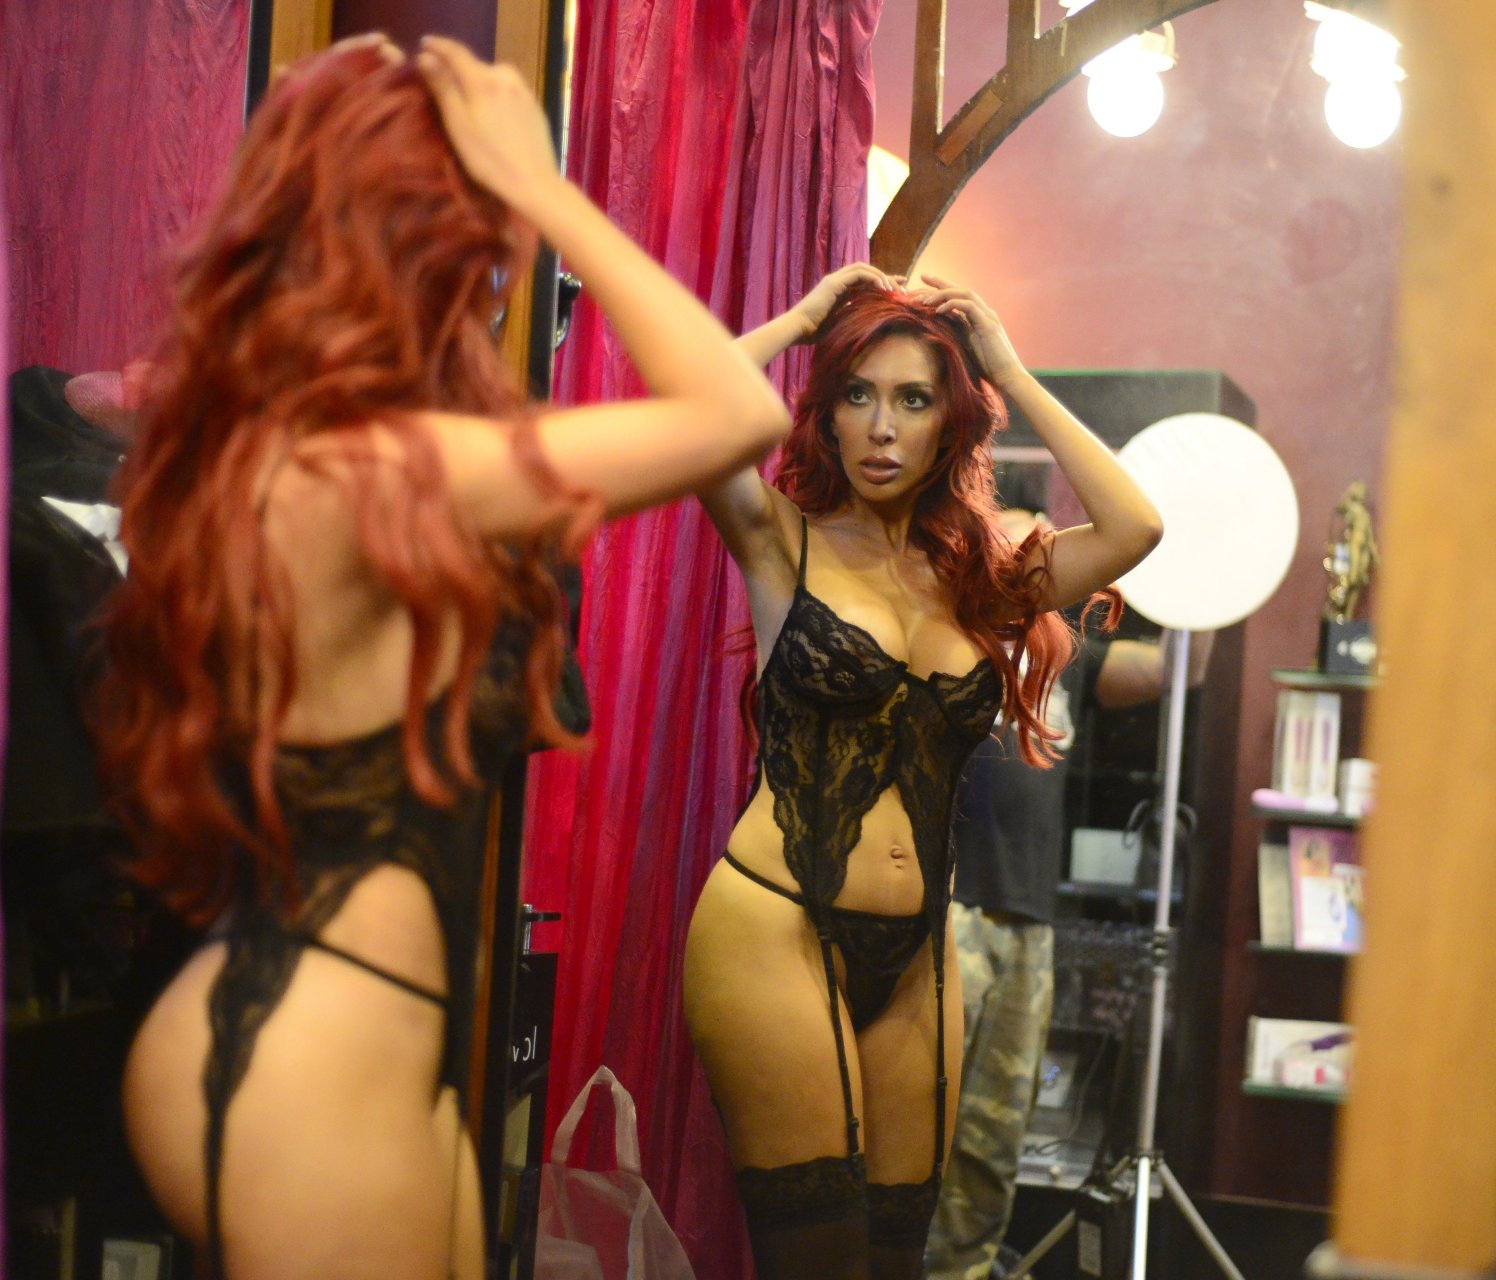 Farrah-Abraham-See-Through-18-The-Fappening-Blog.jpg